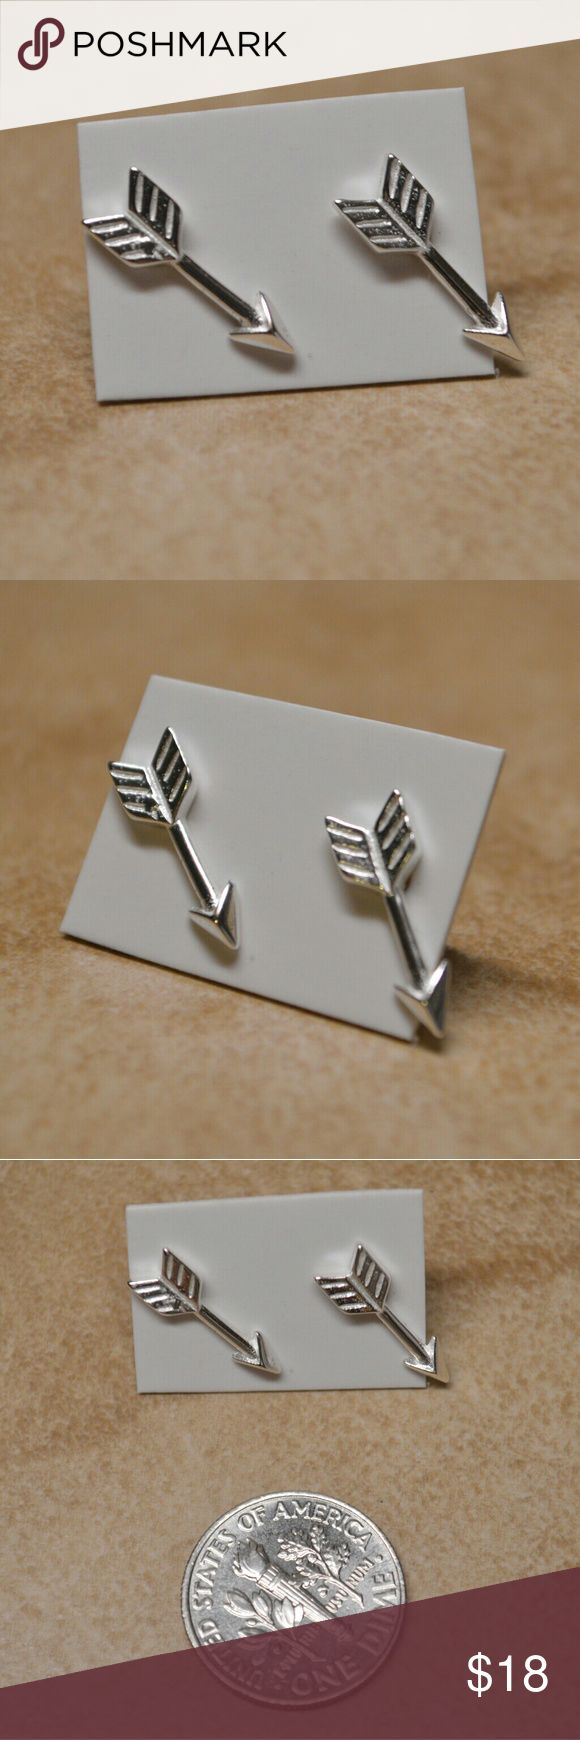 Brand New Sterling Silver Tiny Arrow Earrings Boutique